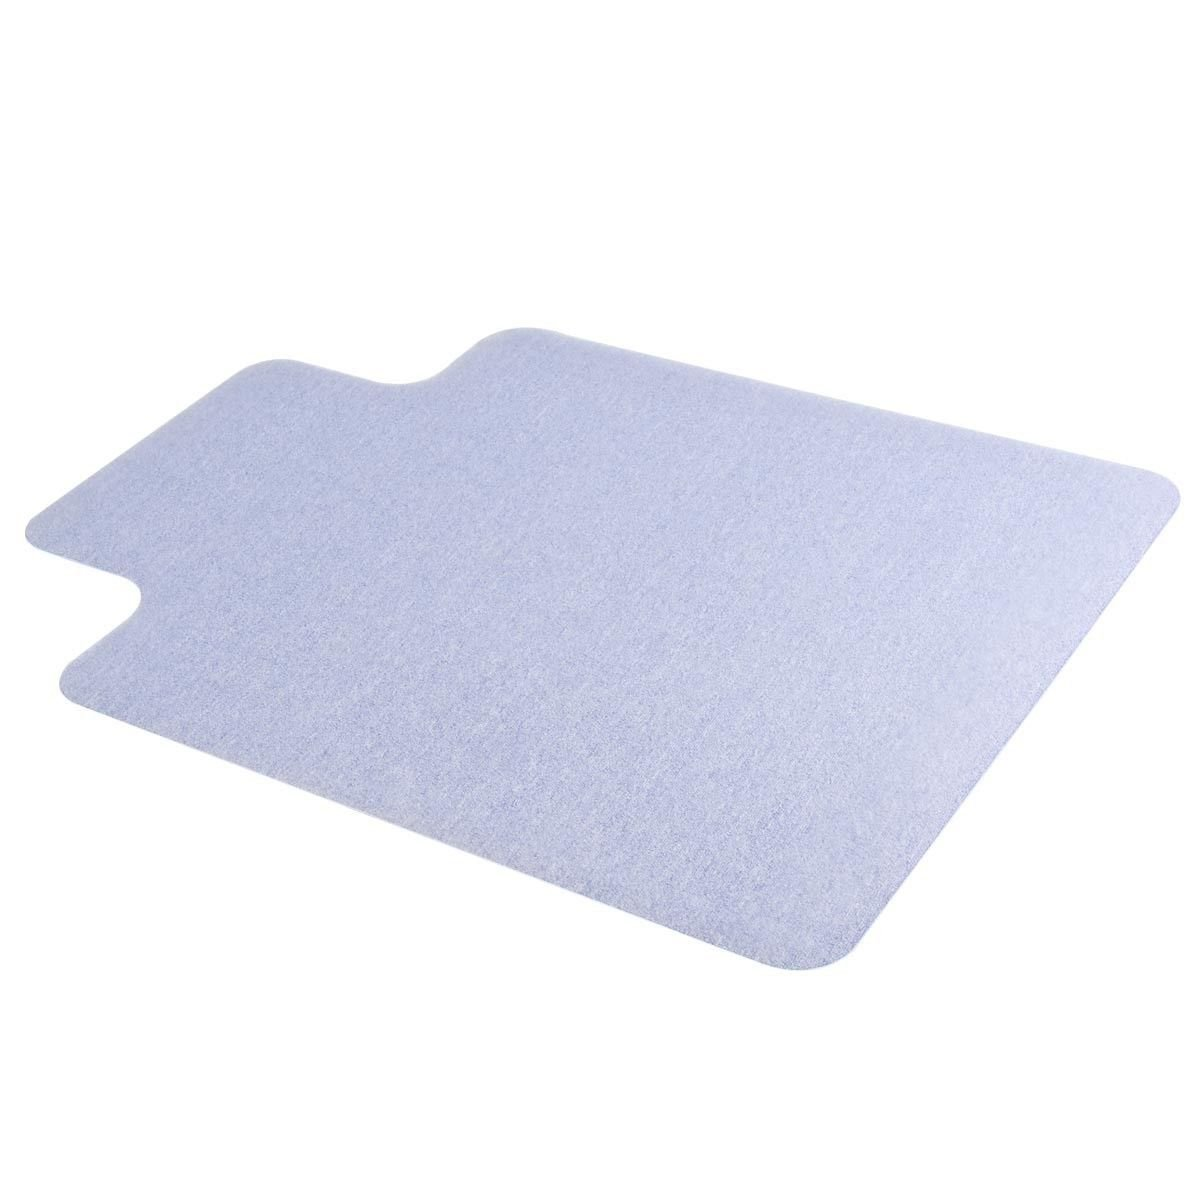 Goplus 48'' x 36'' Clear PVC Office Chair Mat for Hard Floor Tile Protection to 1.50mm Thick (48'' x 36'')